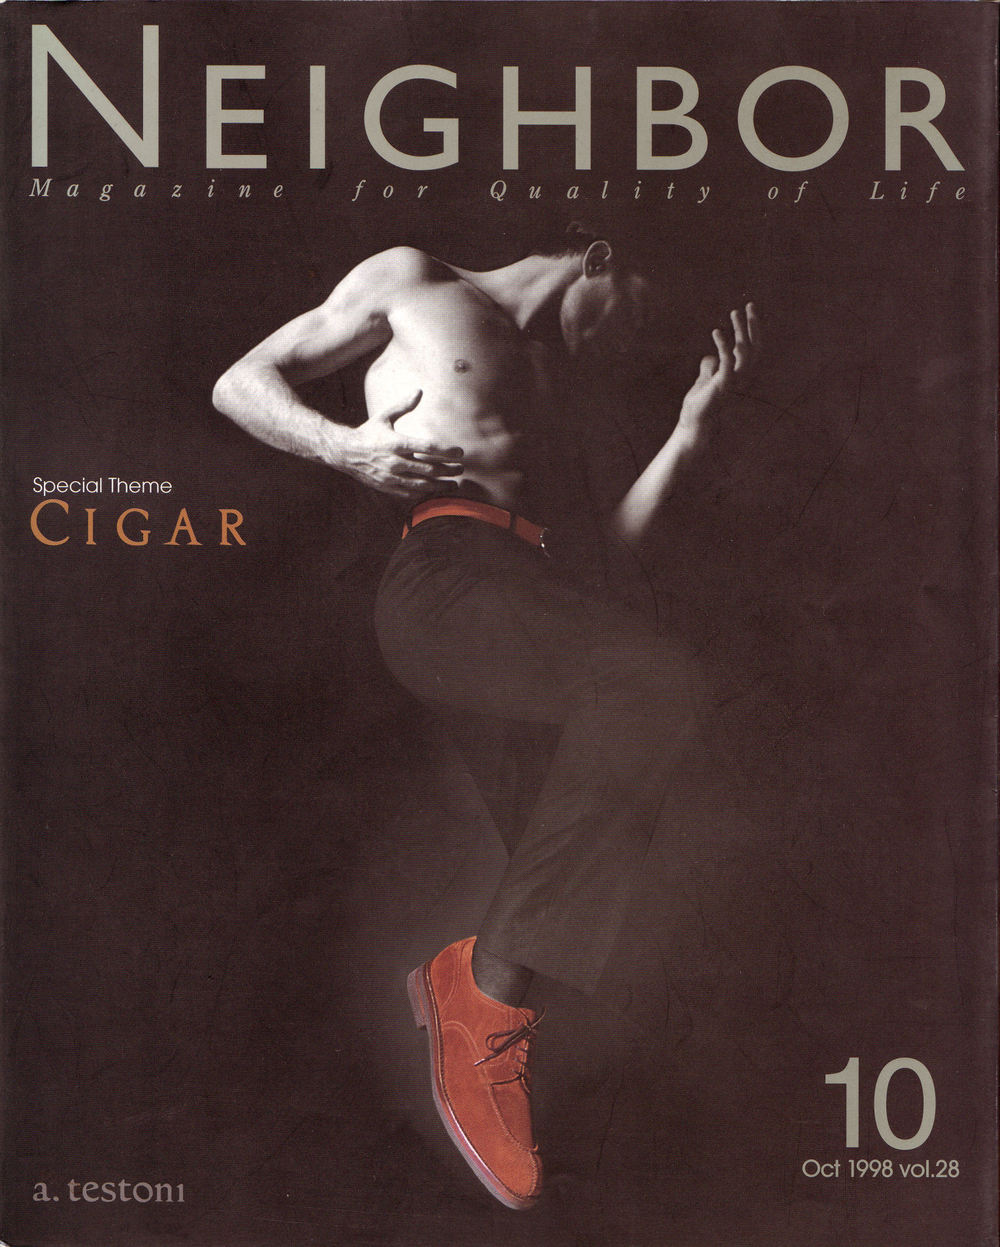 1998-10 Neighbor cover.jpg